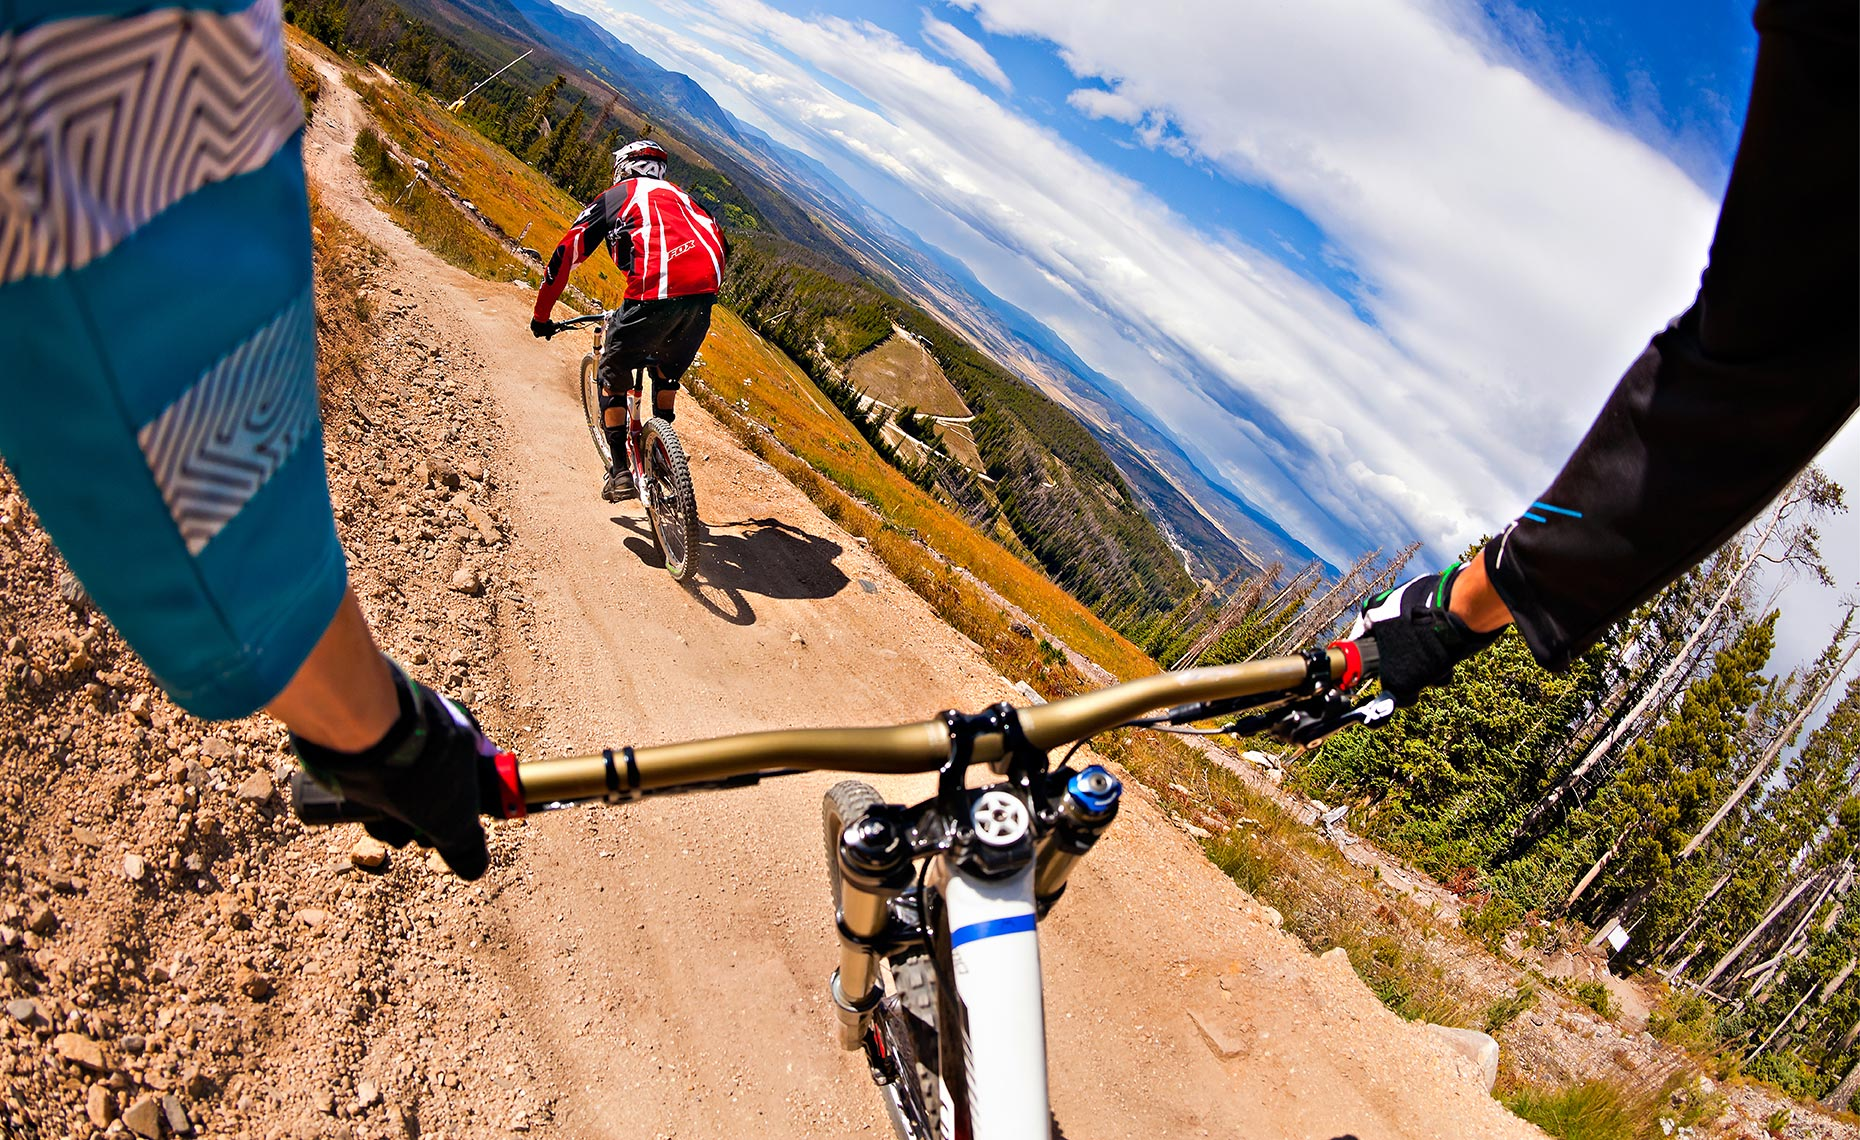 09_Andrew_McKee_Brendan_Newton_Winter_Park_Colorado_Trestle_Bike_Mountain_Biking_Chris_Wellhausen_Photography.JPG